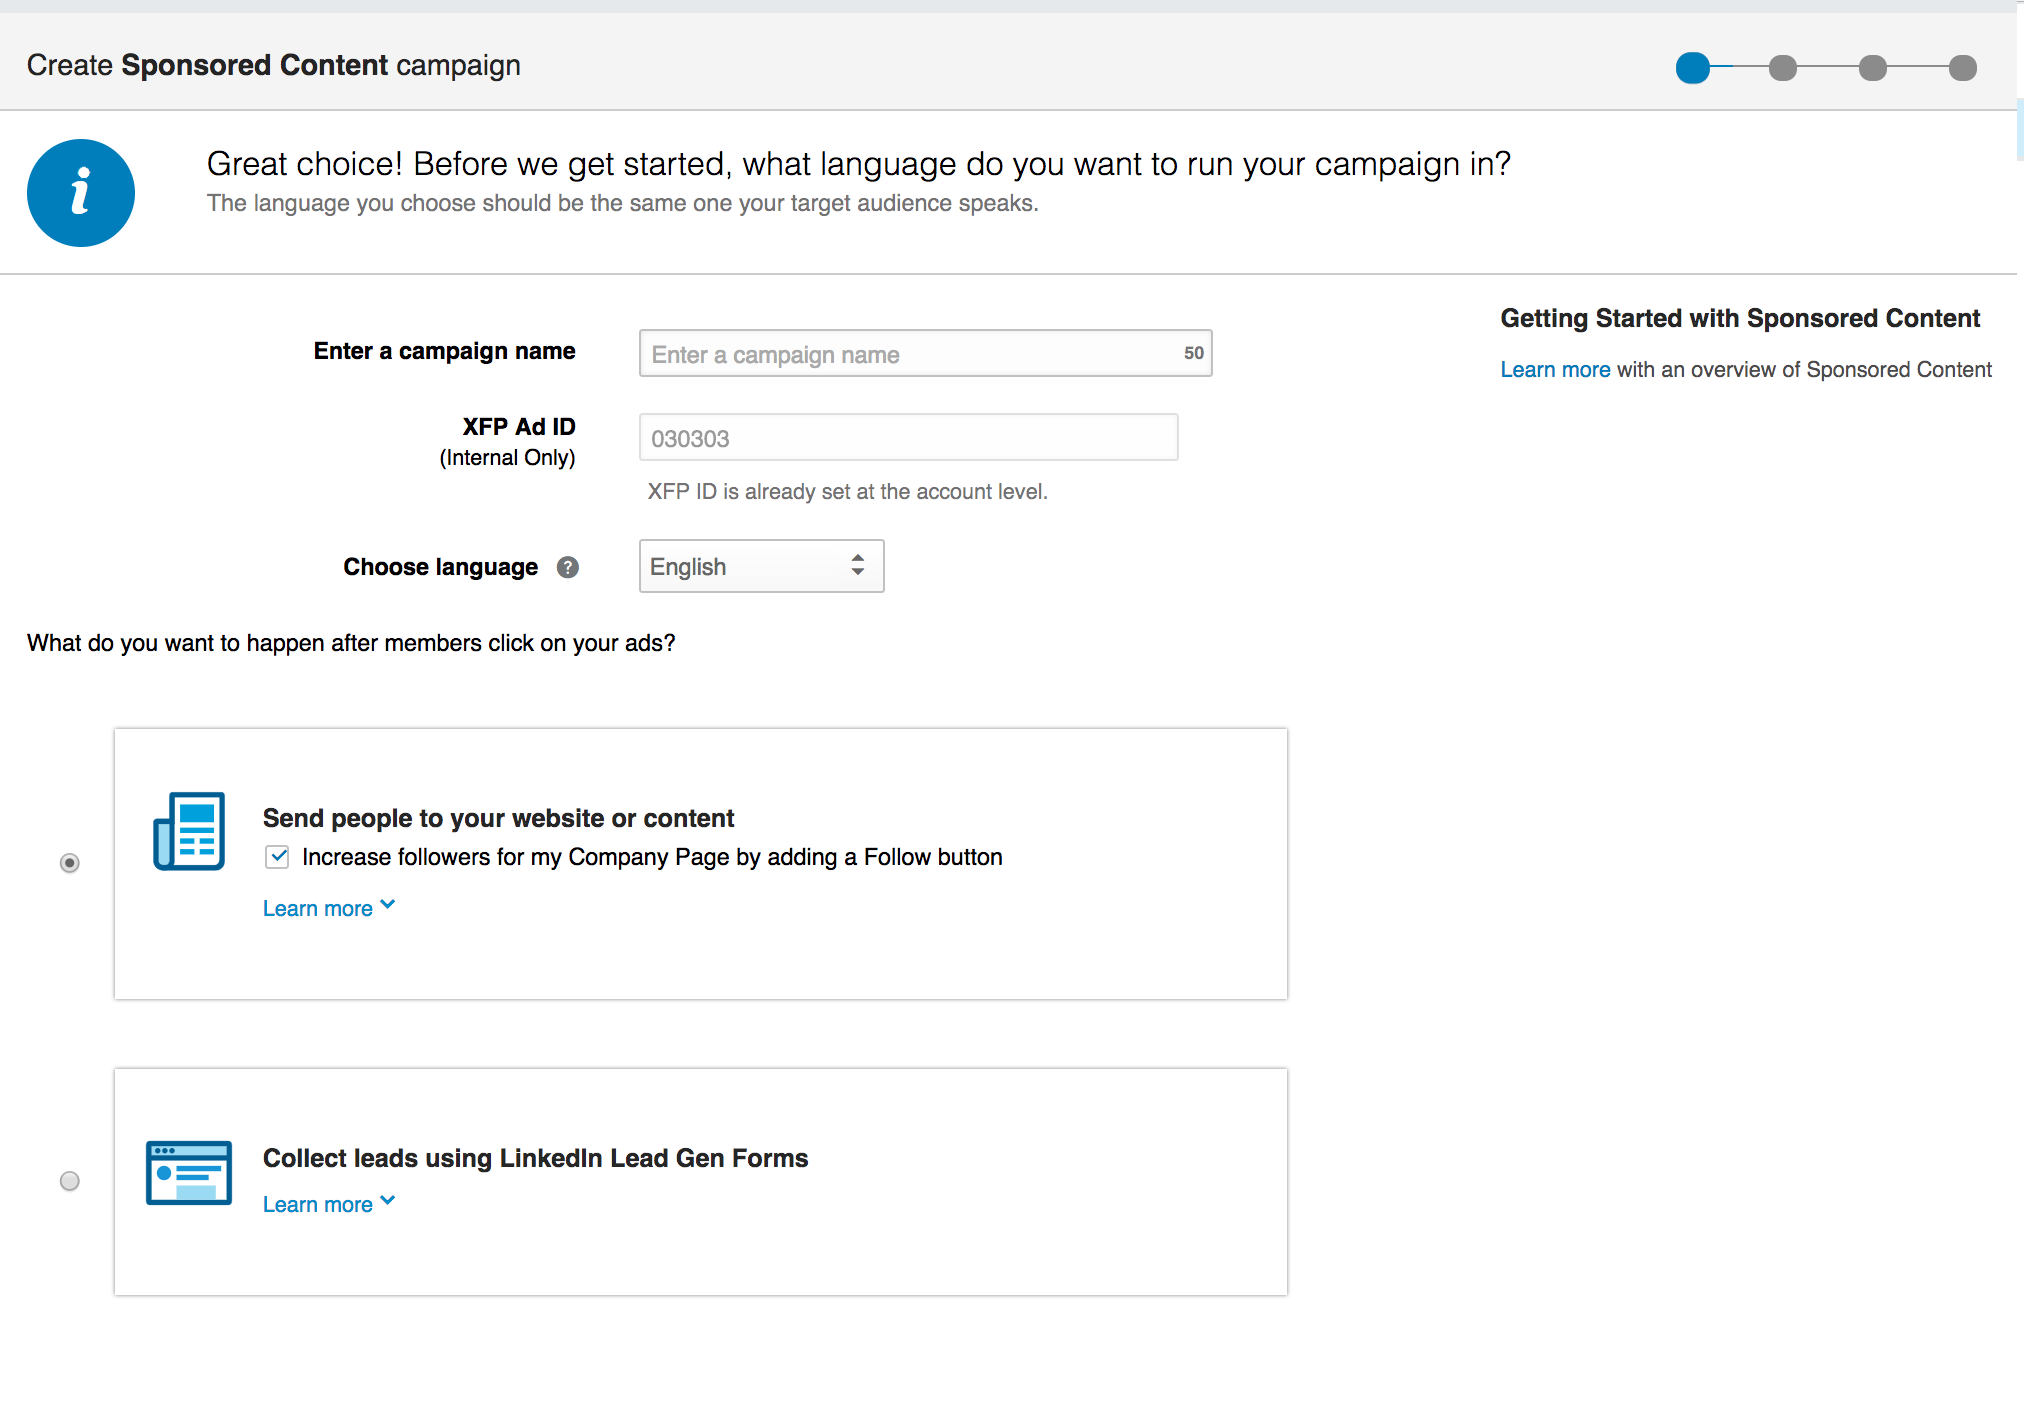 Collect Leads using LinkedIn Lead Gen Form